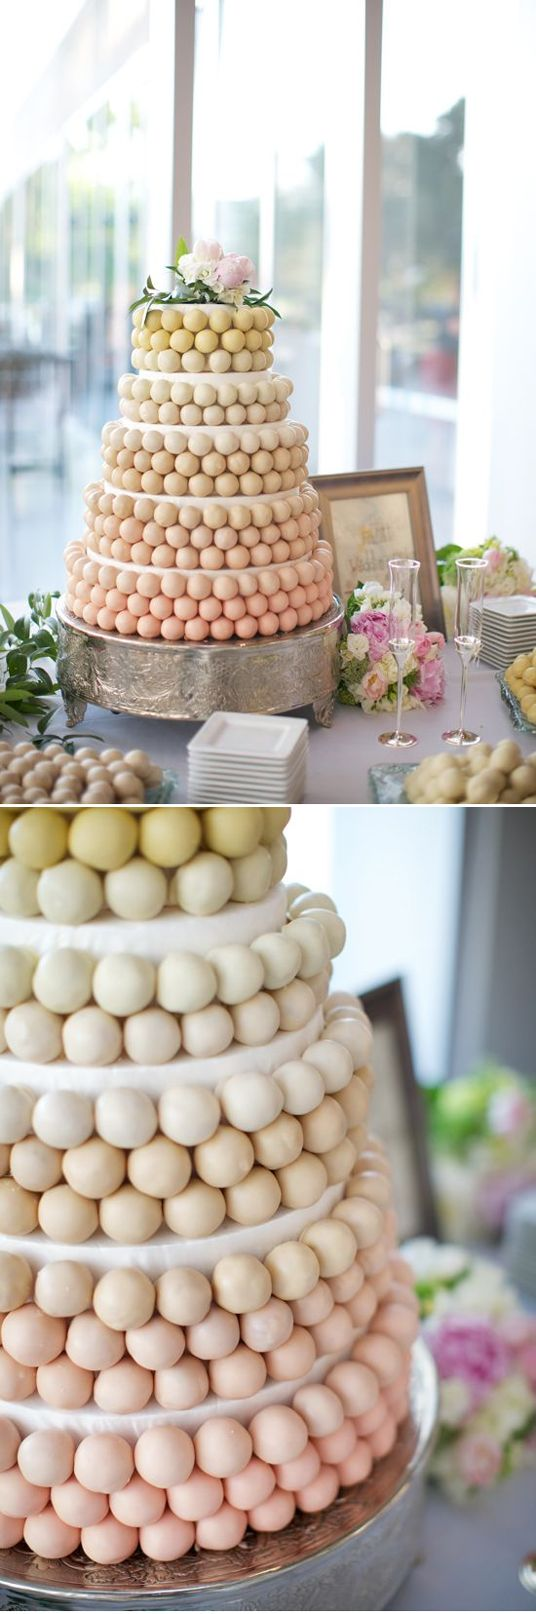 Cake pops - such a neat wedding cake alternative.  And would be so easy to make gluten free!